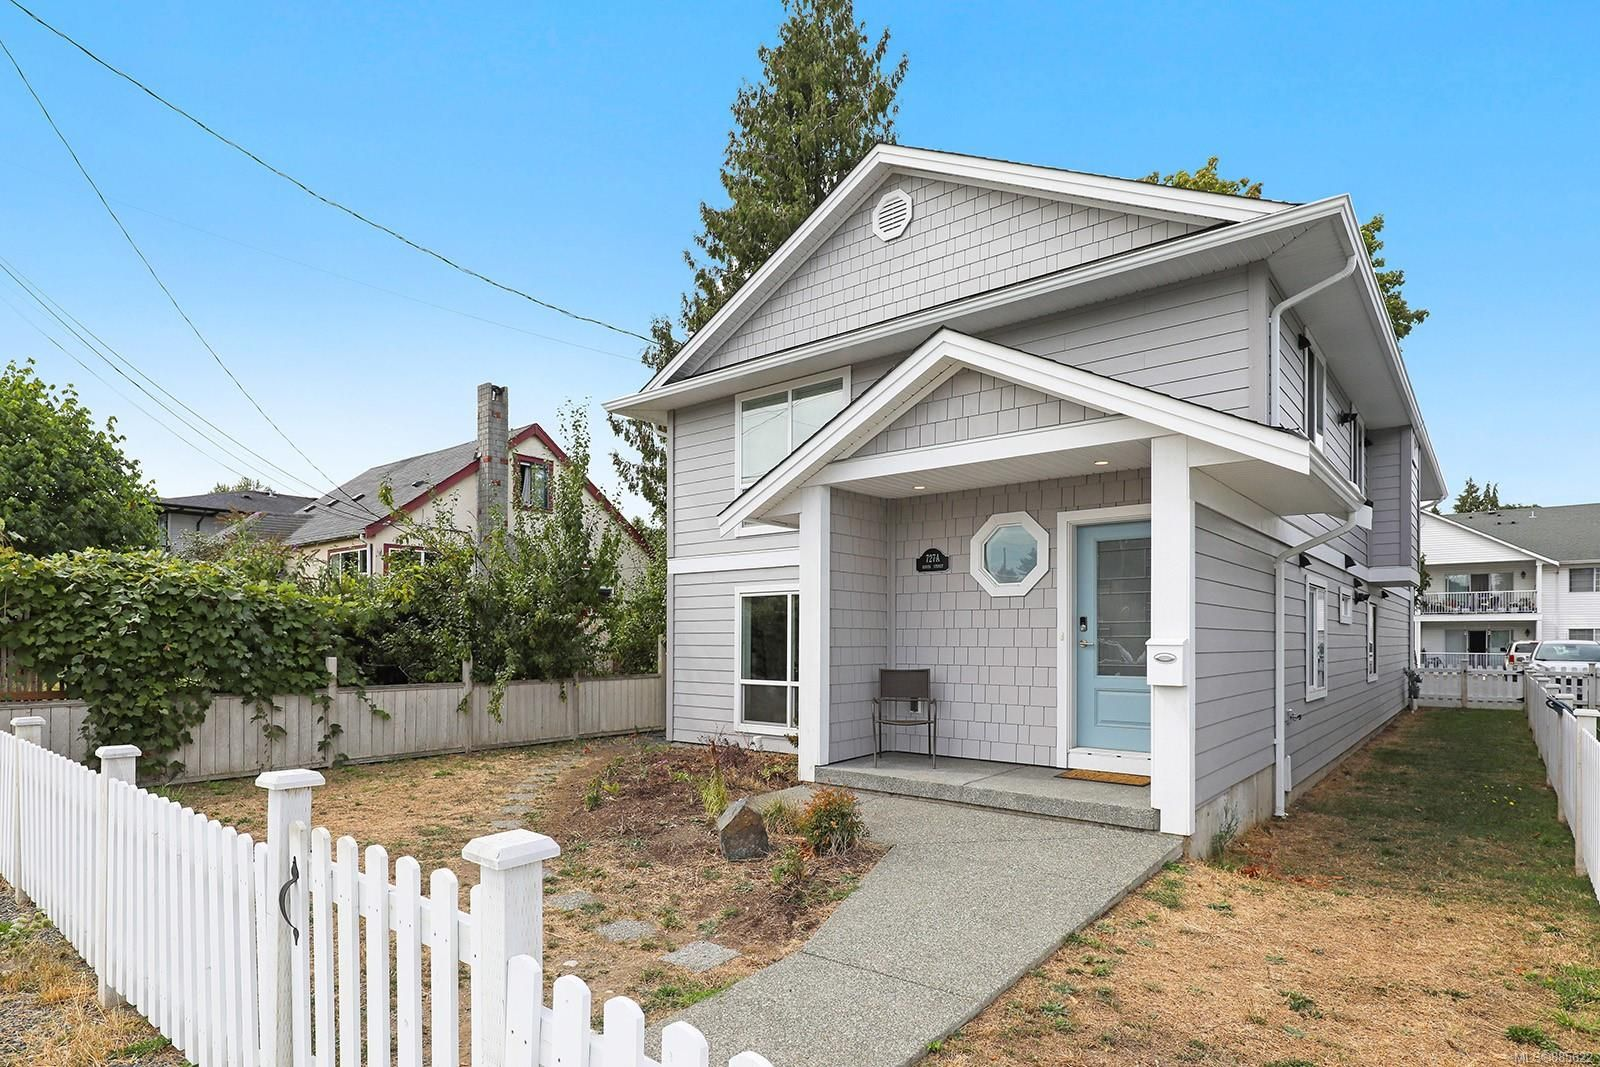 Main Photo: 727 9th St in Courtenay: CV Courtenay City House for sale (Comox Valley)  : MLS®# 885622